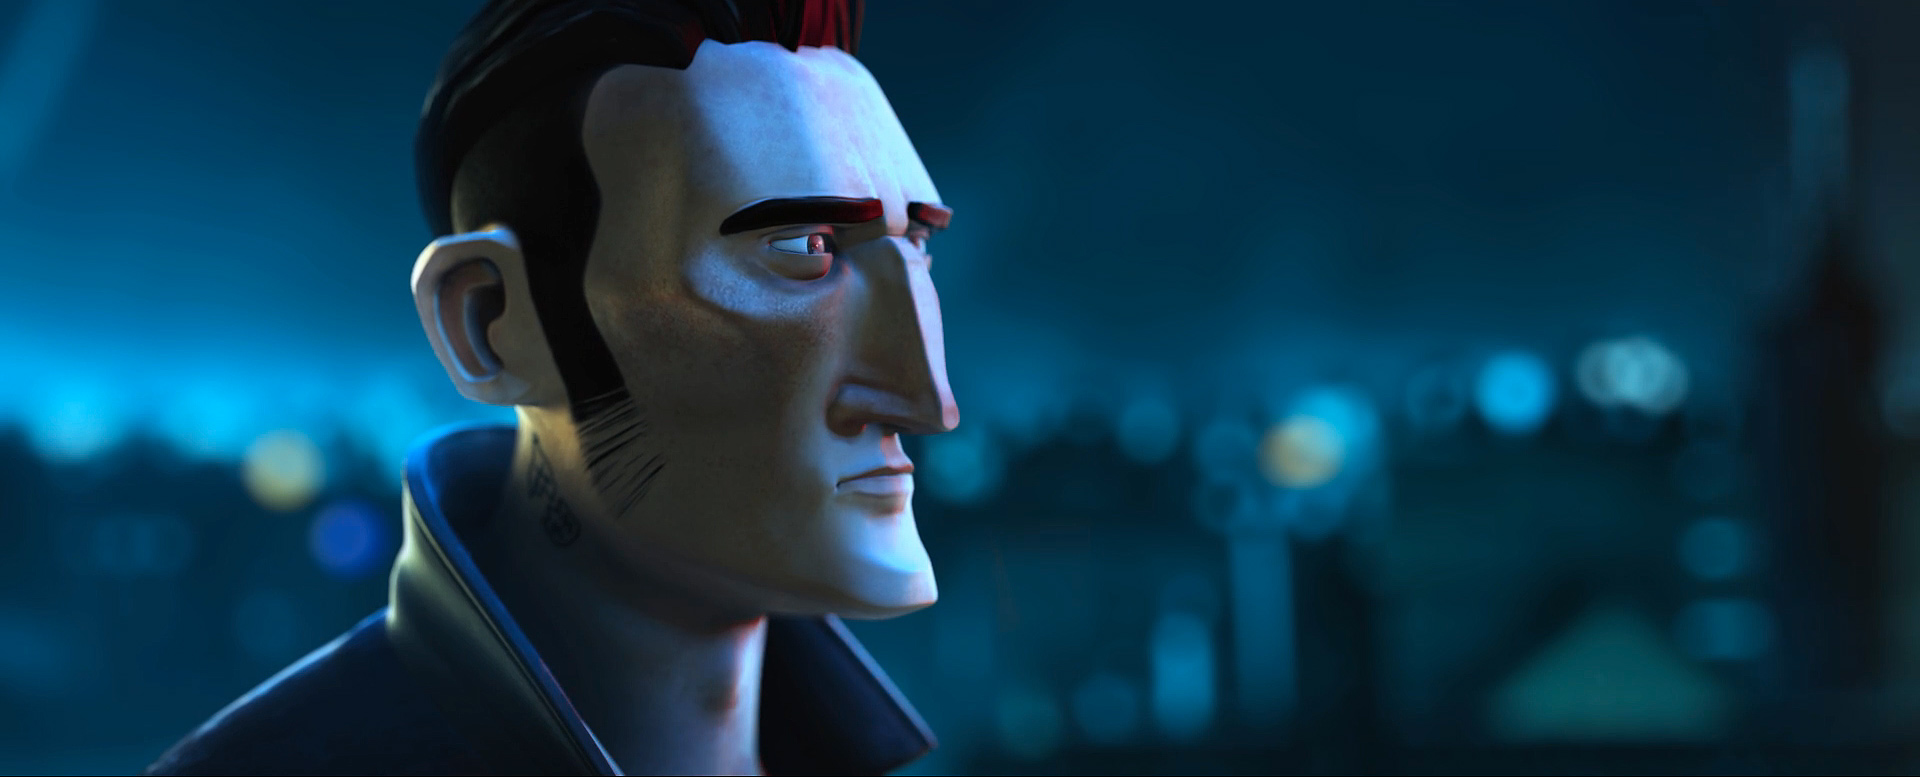 animated-action-short-walter-the-gathering-7.jpg